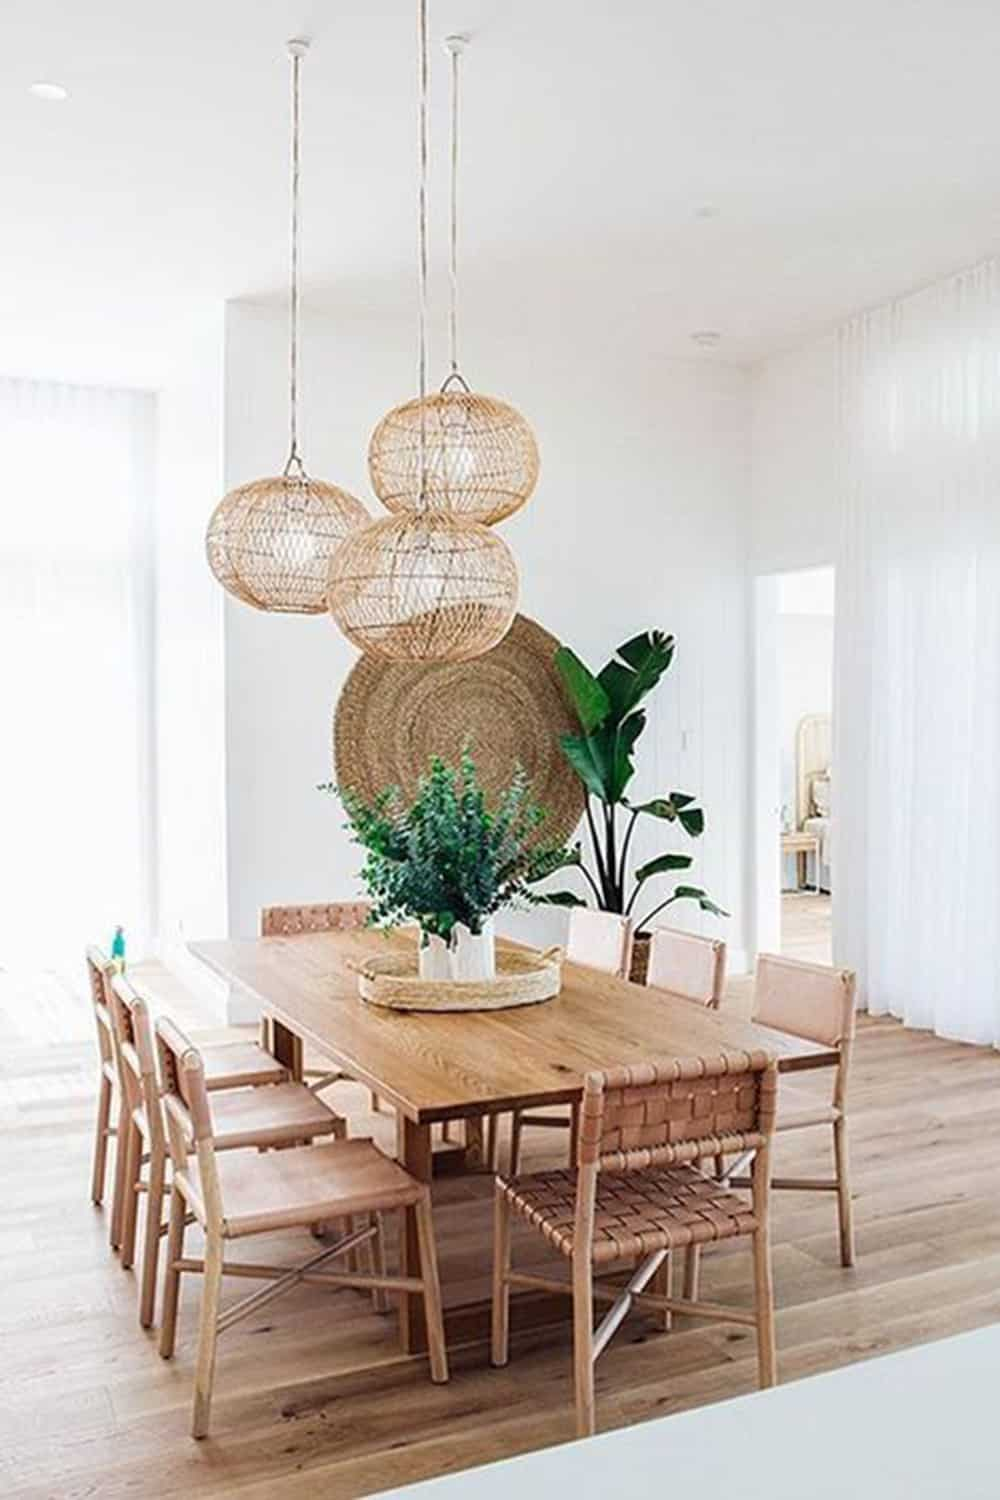 Tips for a great lighting decor